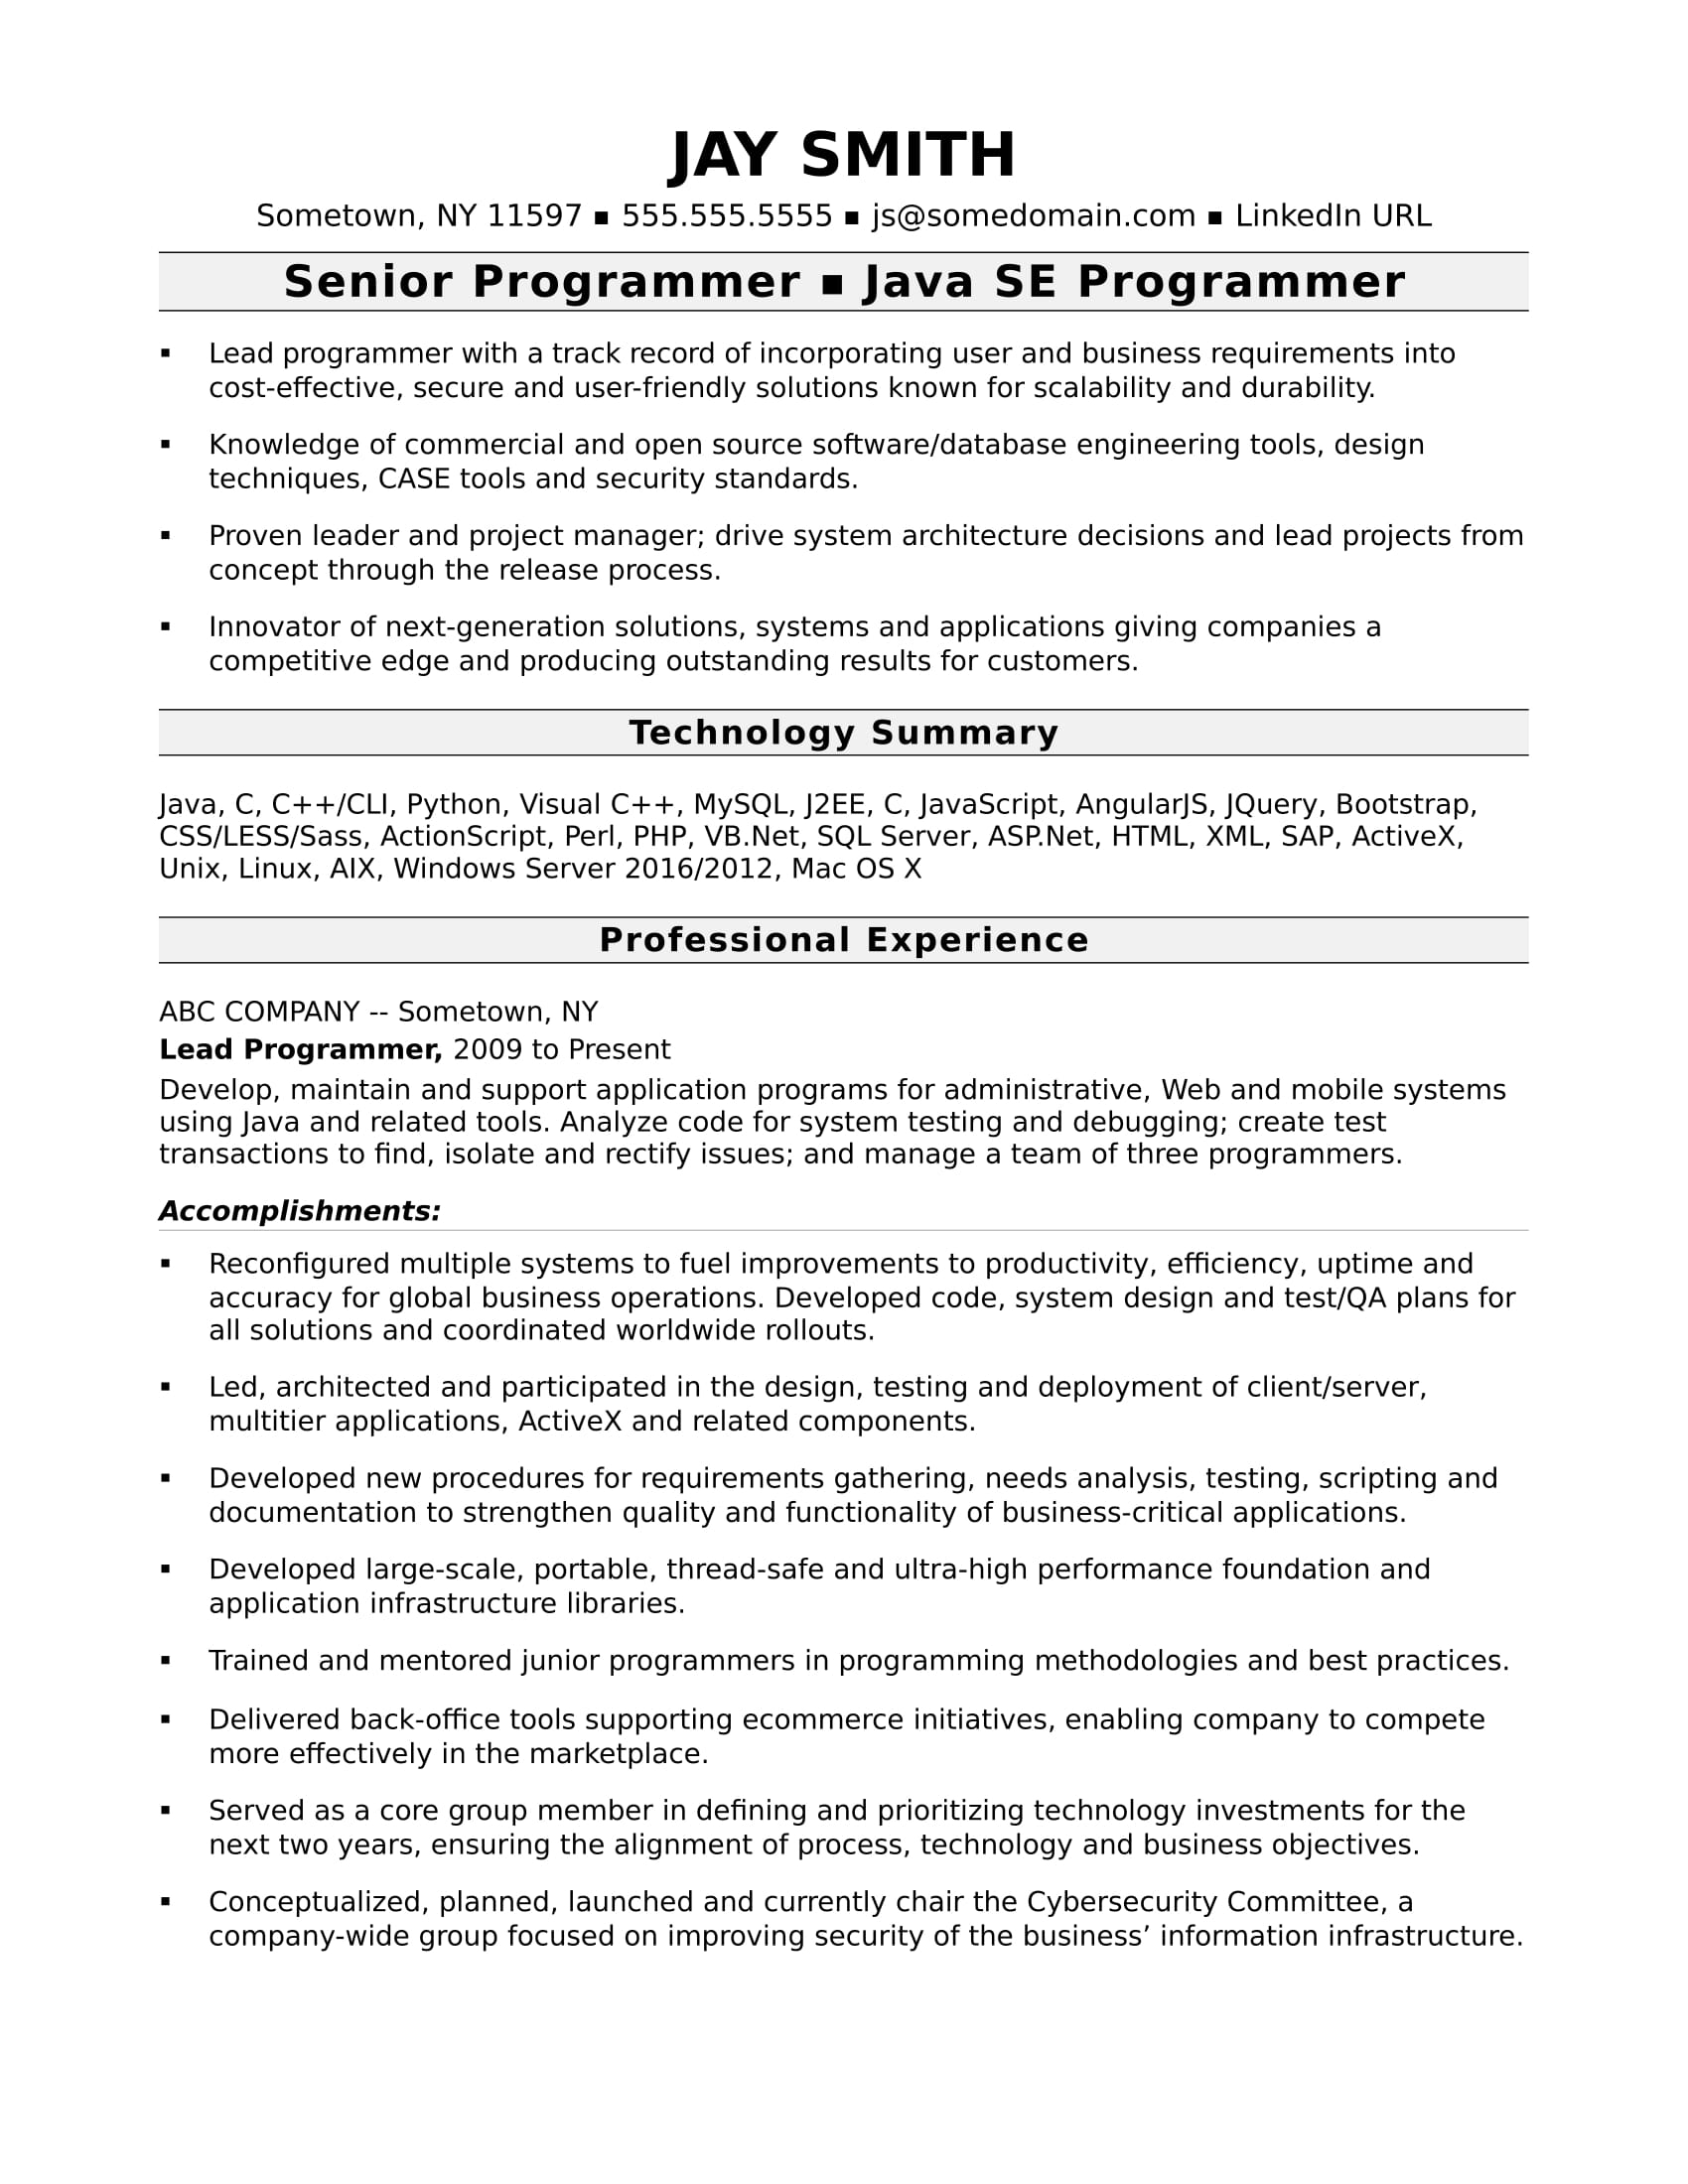 sample resume for an experienced computer programmer - Example Resume